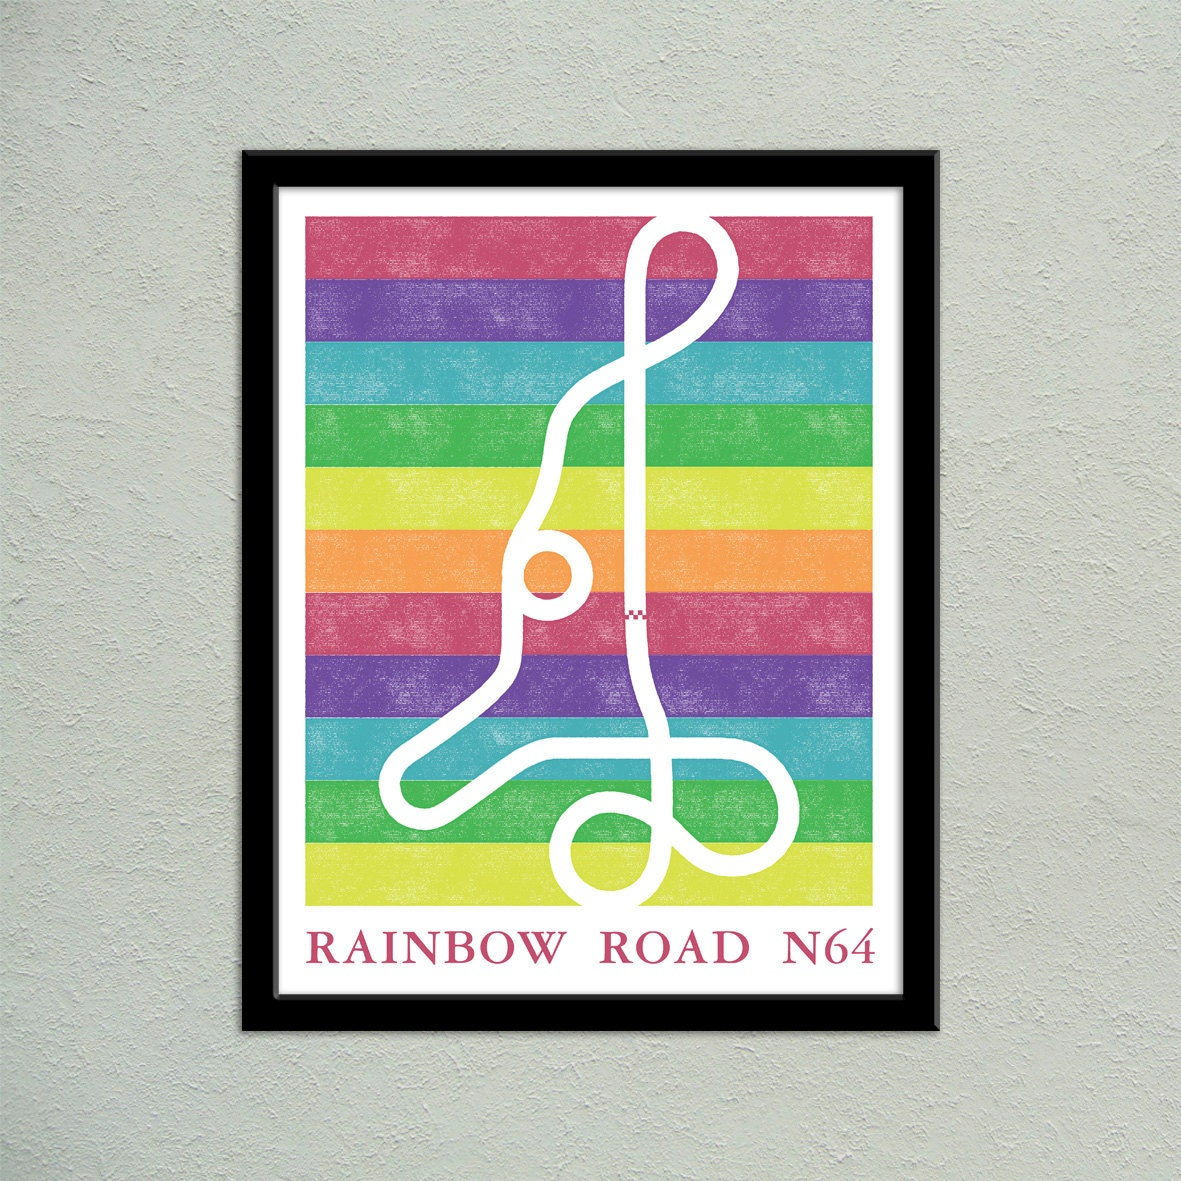 Mario kart 64 rainbow road track map poster super mario kart zoom gumiabroncs Choice Image